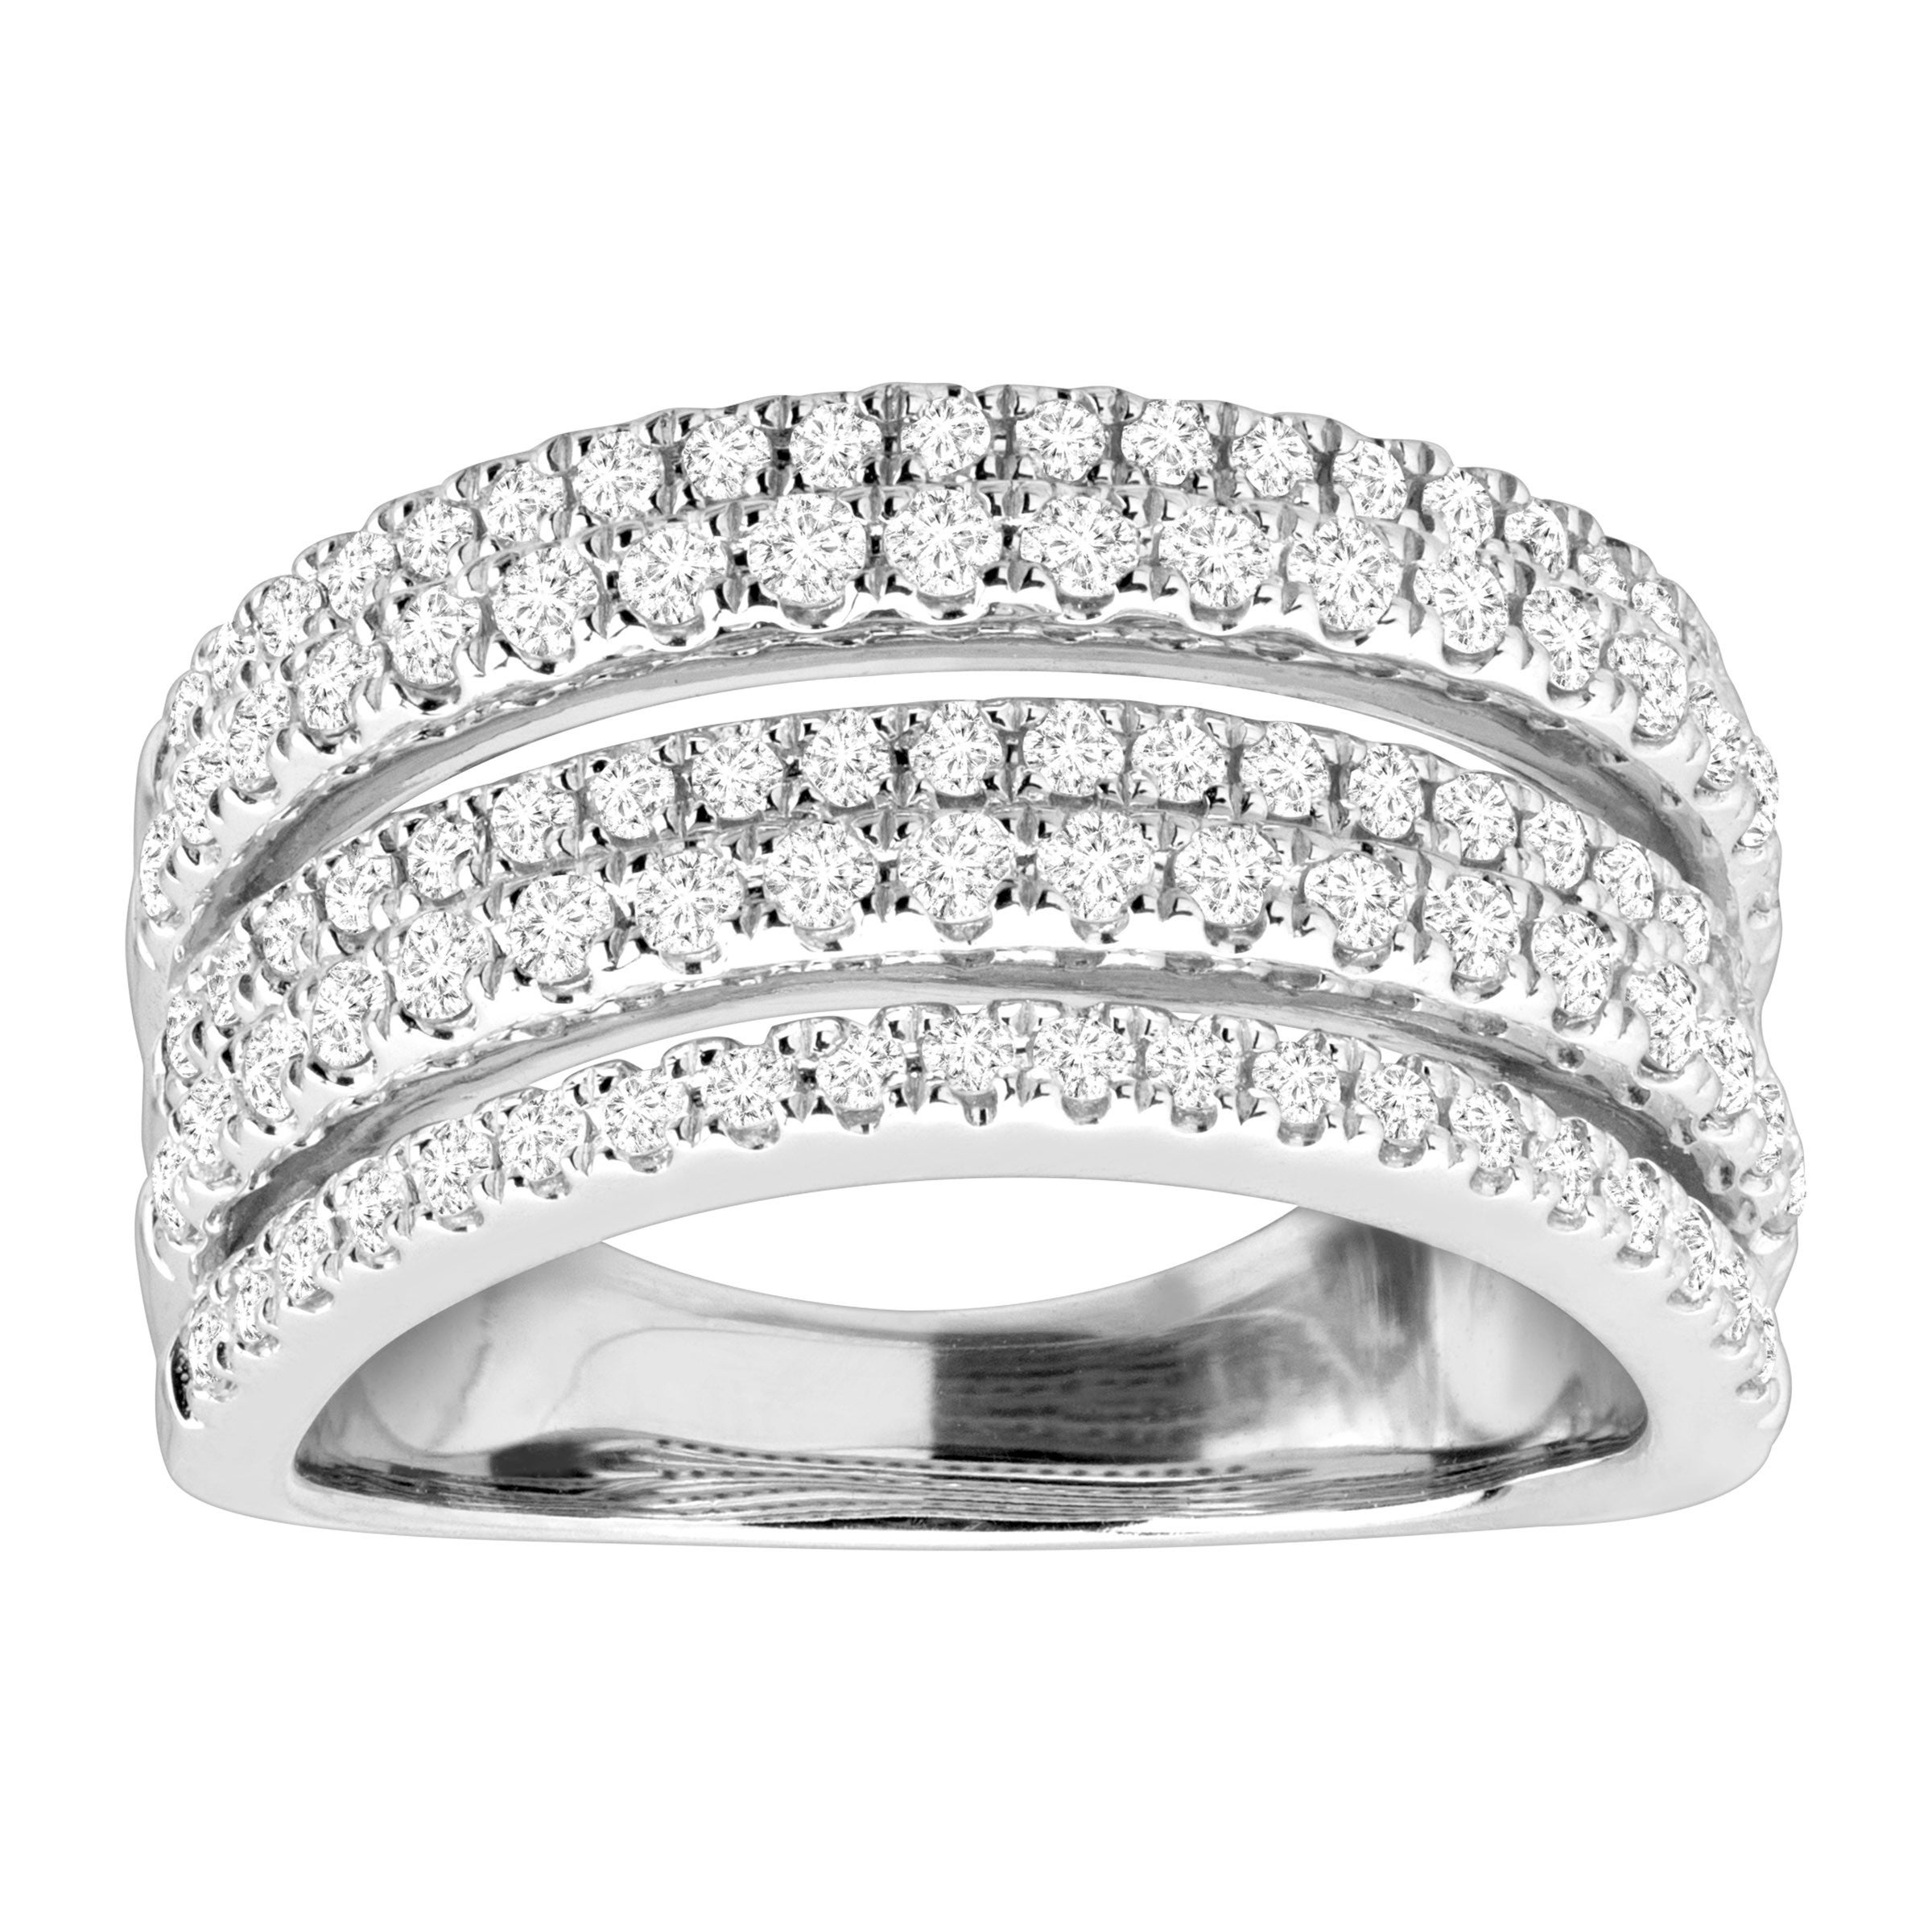 1 Ct Diamond Multi Band Anniversary Ring In 10K White Gold Intended For Best And Newest Certified Diamond Five Row Anniversary Bands In White Gold (View 2 of 25)